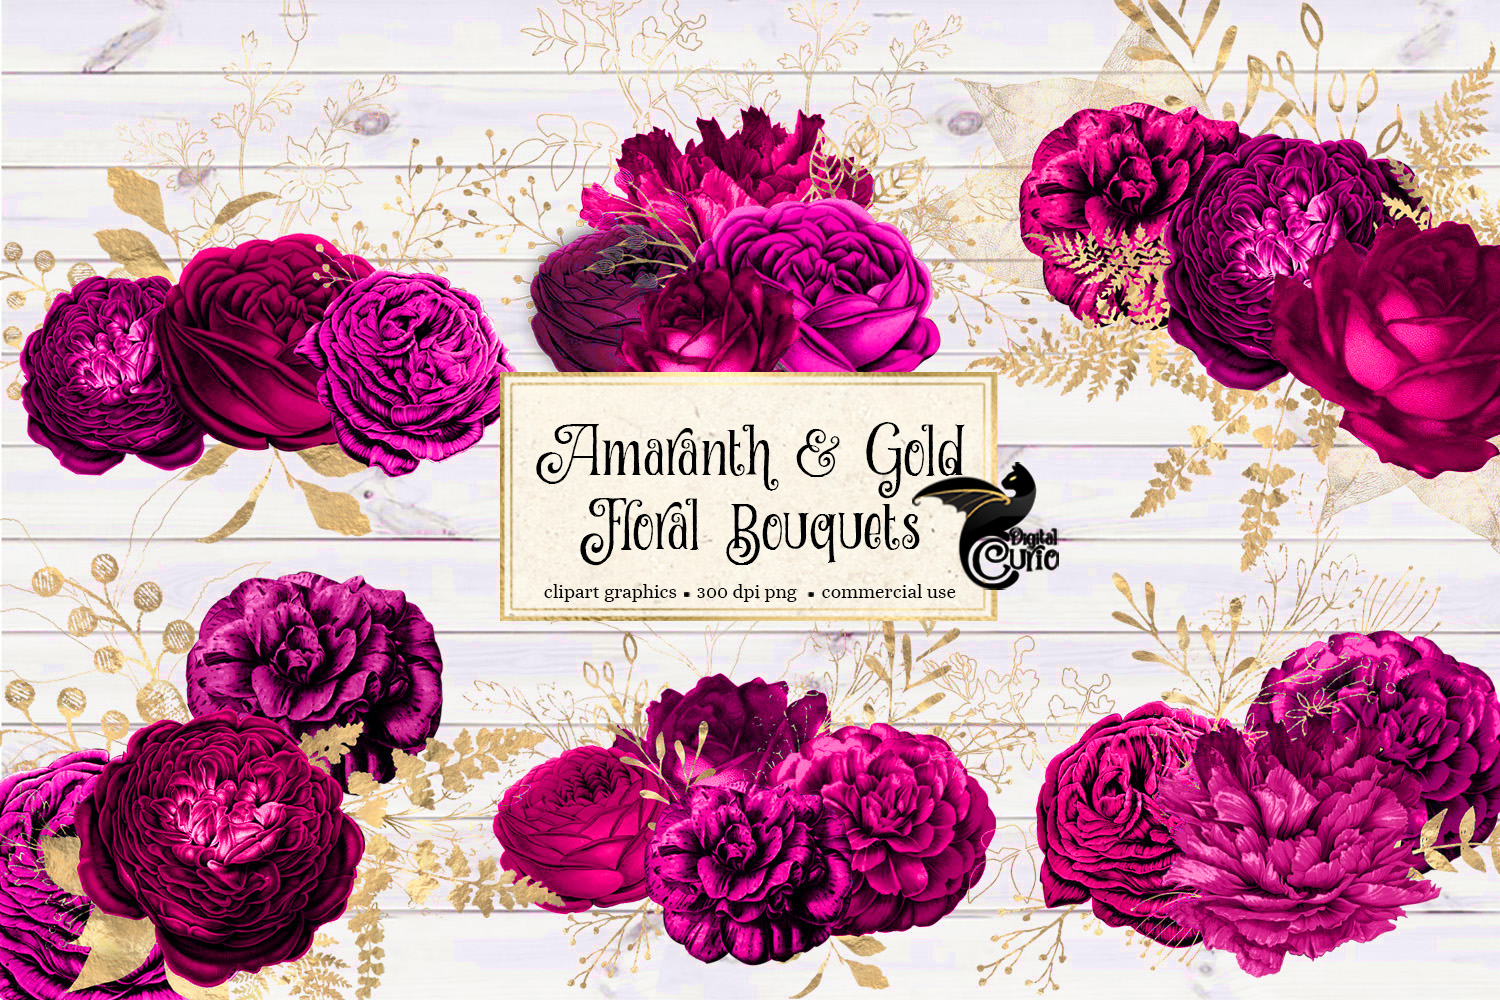 Amaranth and Gold Floral Bouquets example image 1